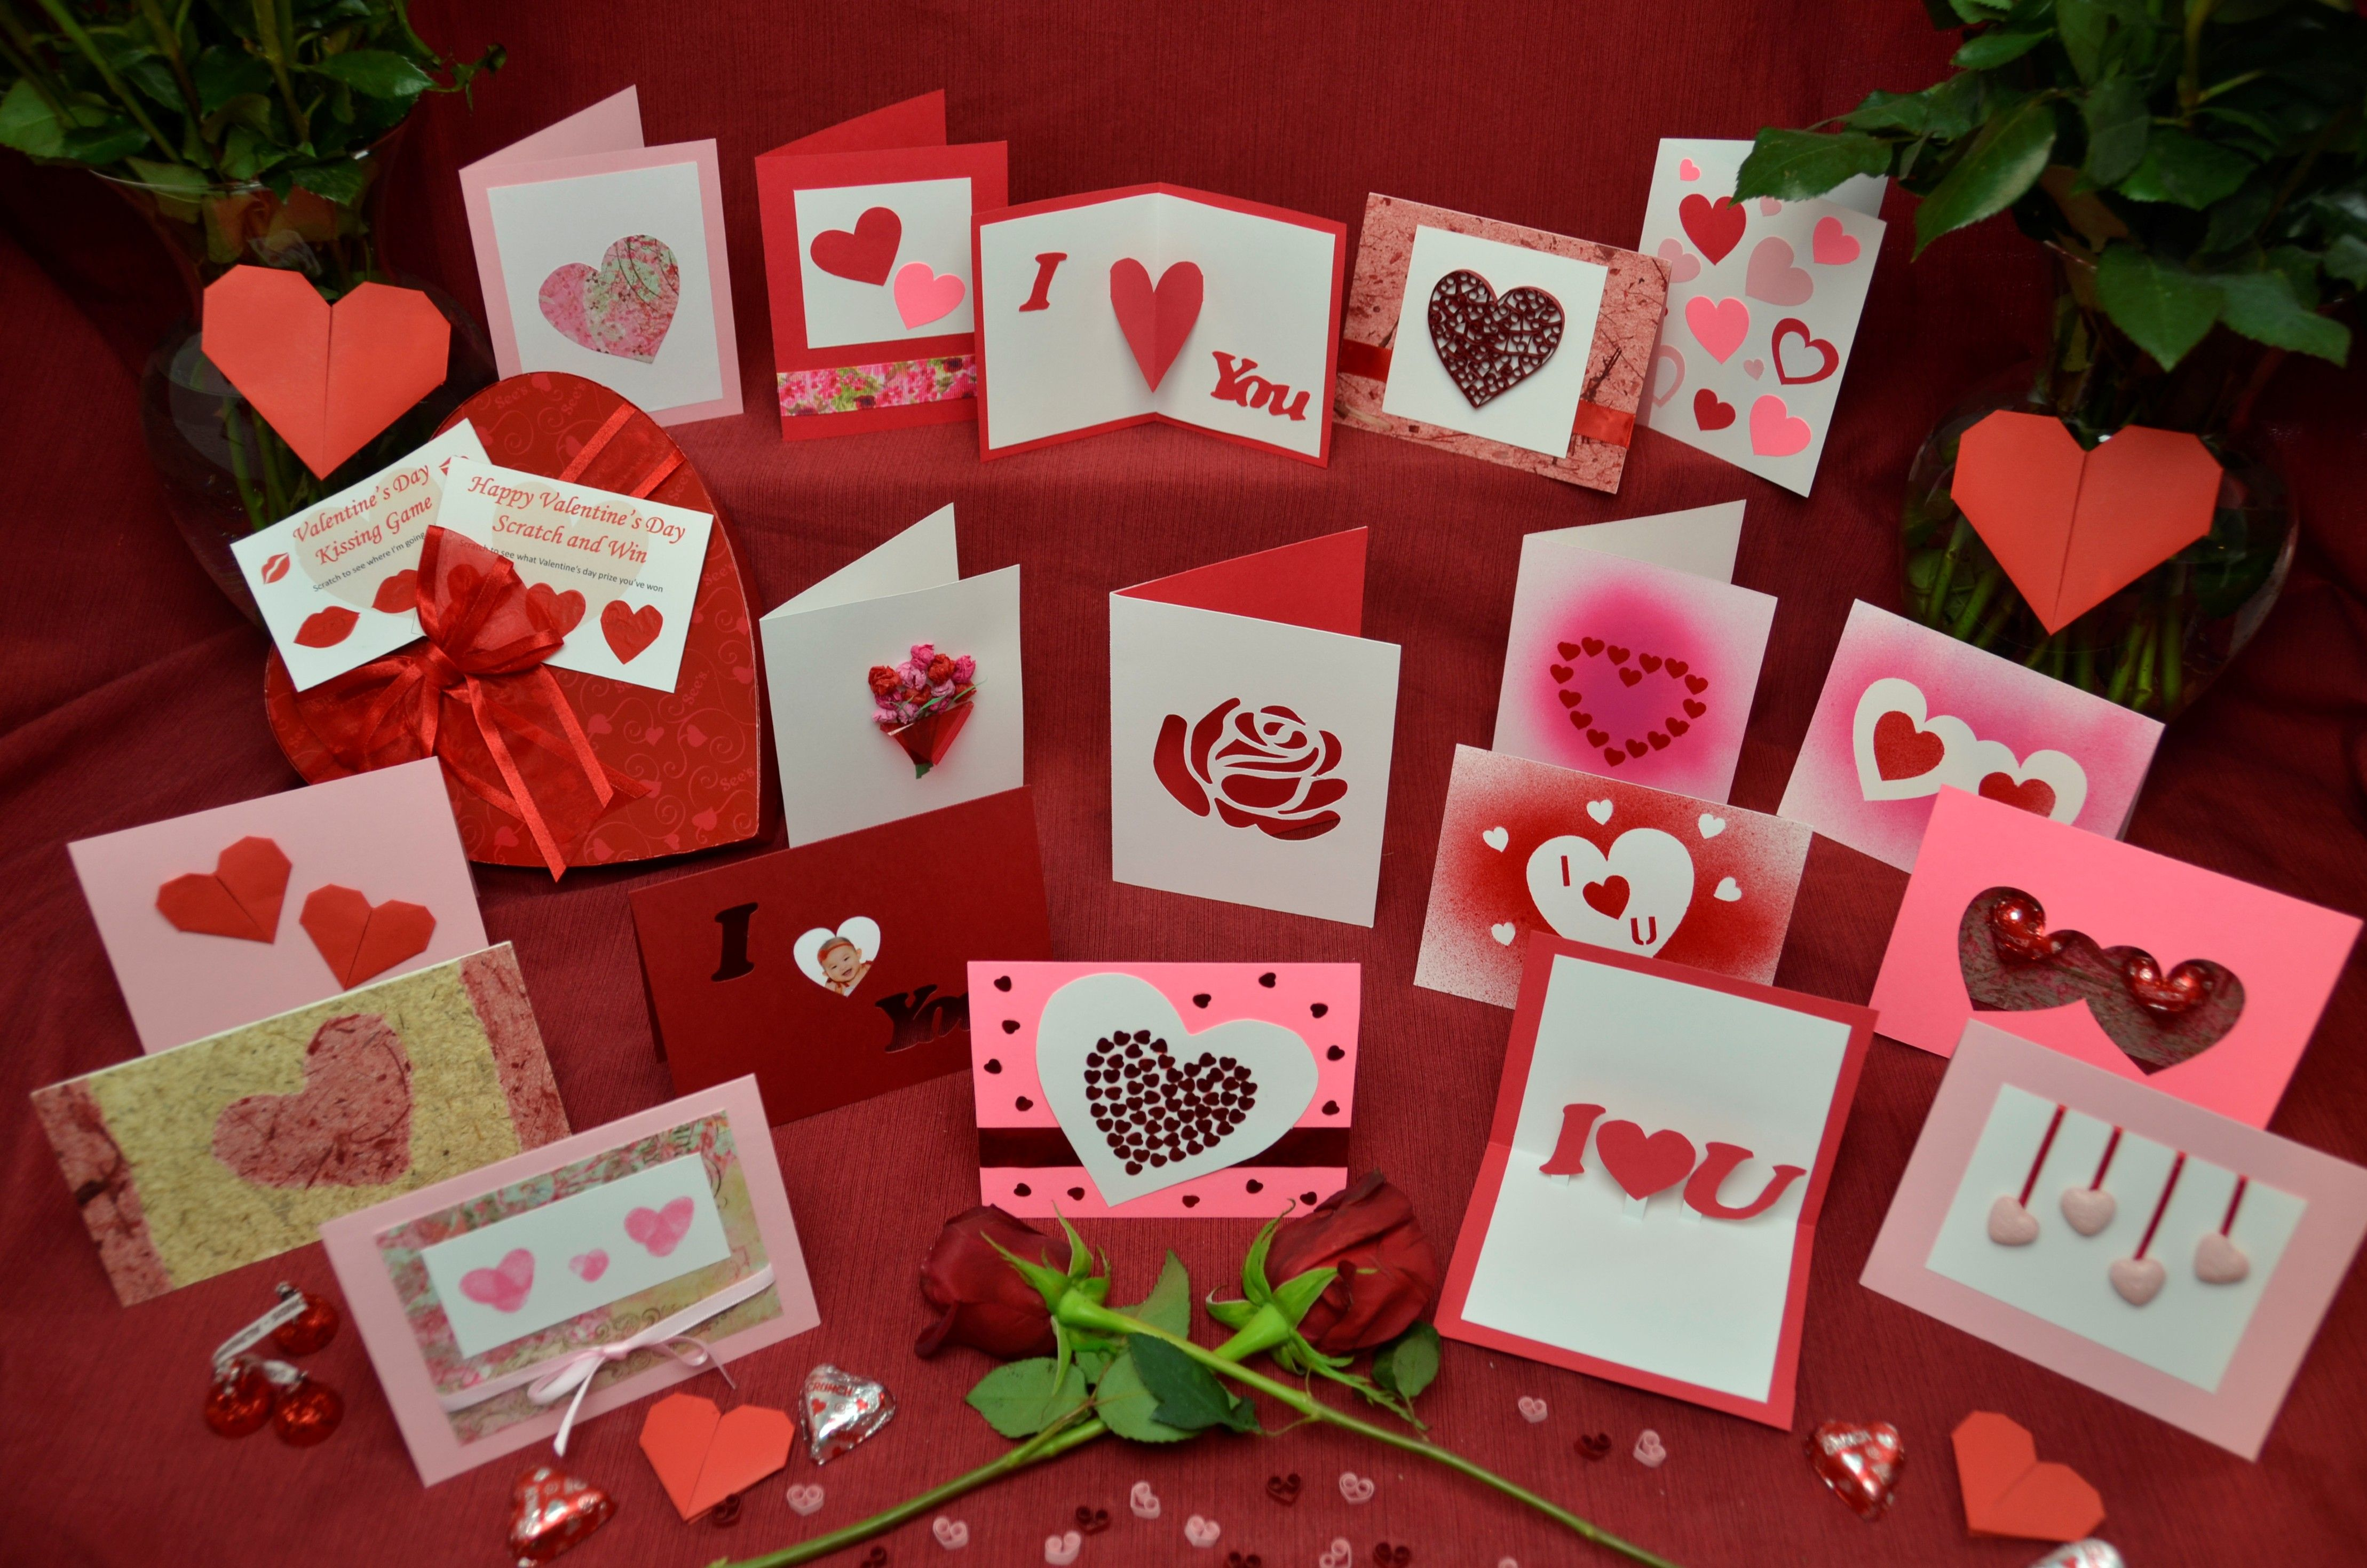 Top 10 Ideas For Valentine S Day Cards Romantic Valentines Day Ideas Valentines Day Trivia Cute Valentines Day Ideas